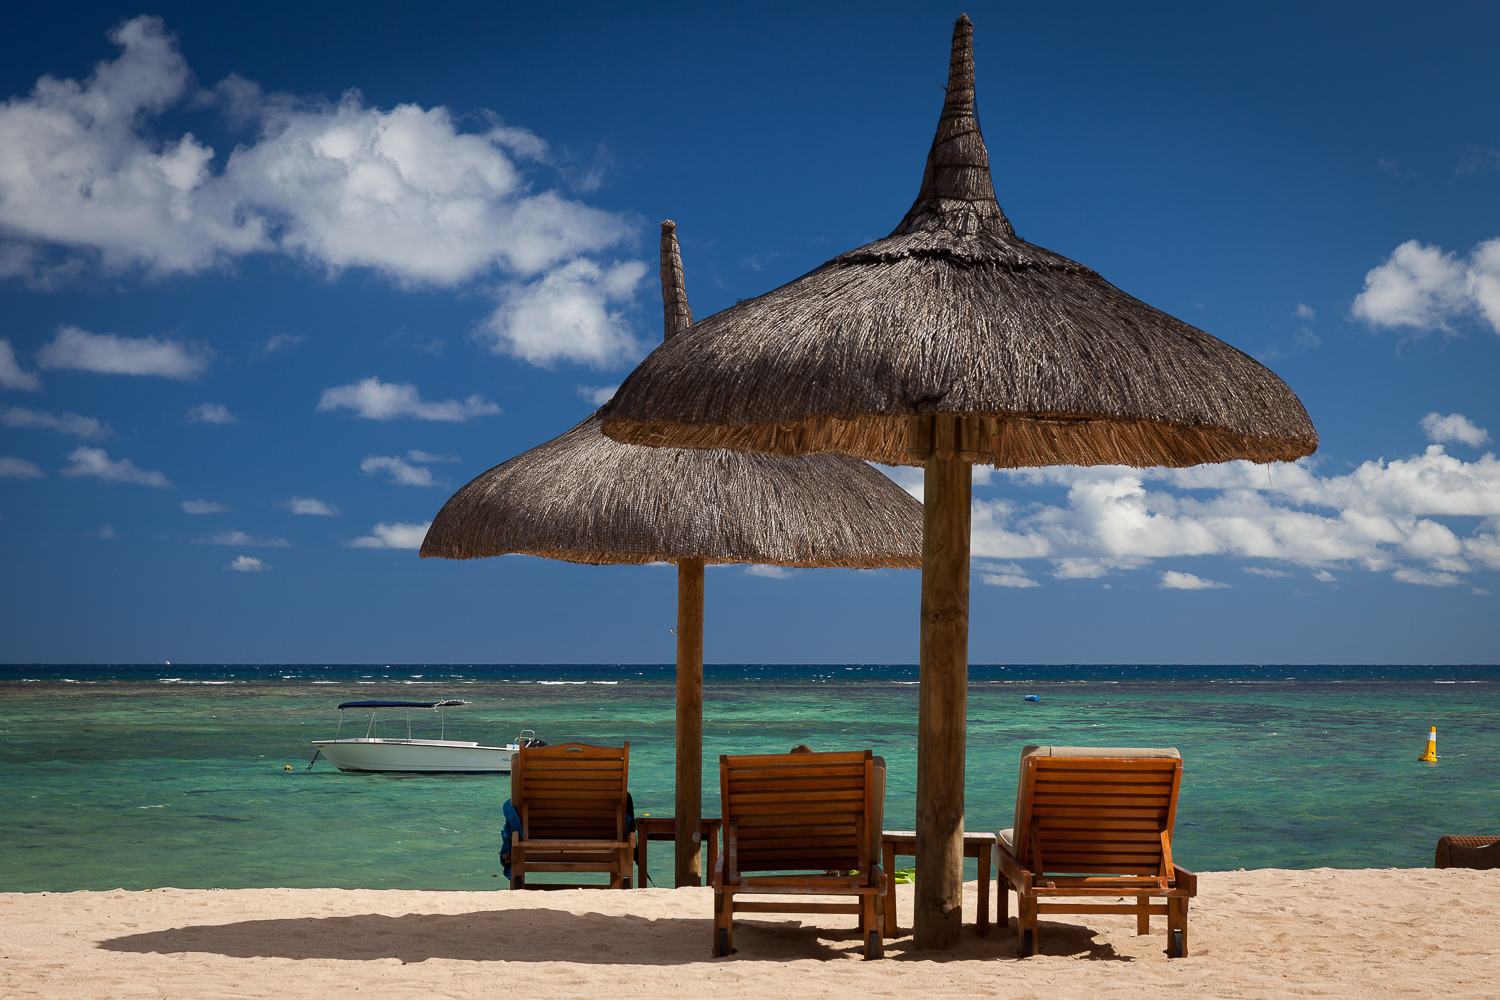 advantages of tourism in mauritius essays The advantages of ecotourism include the preservation of natural habitats and resources, support of local economies, and the education of ecotourists on local cultures and traditions, sustainable.